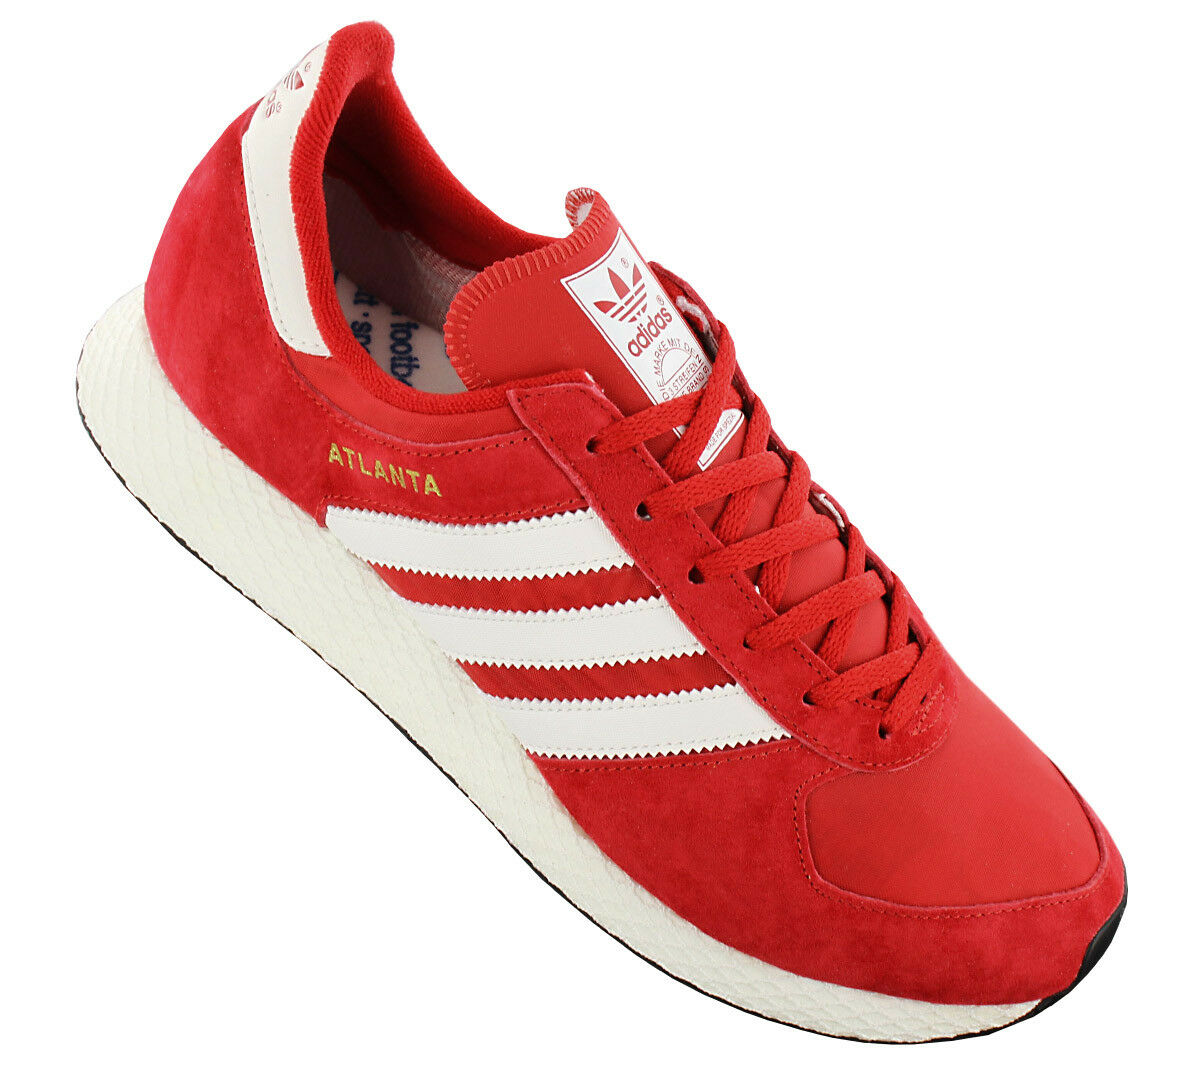 NEW adidas Originals Atlanta Spezial BY1880 Men''s shoes Trainers Sneakers SALE